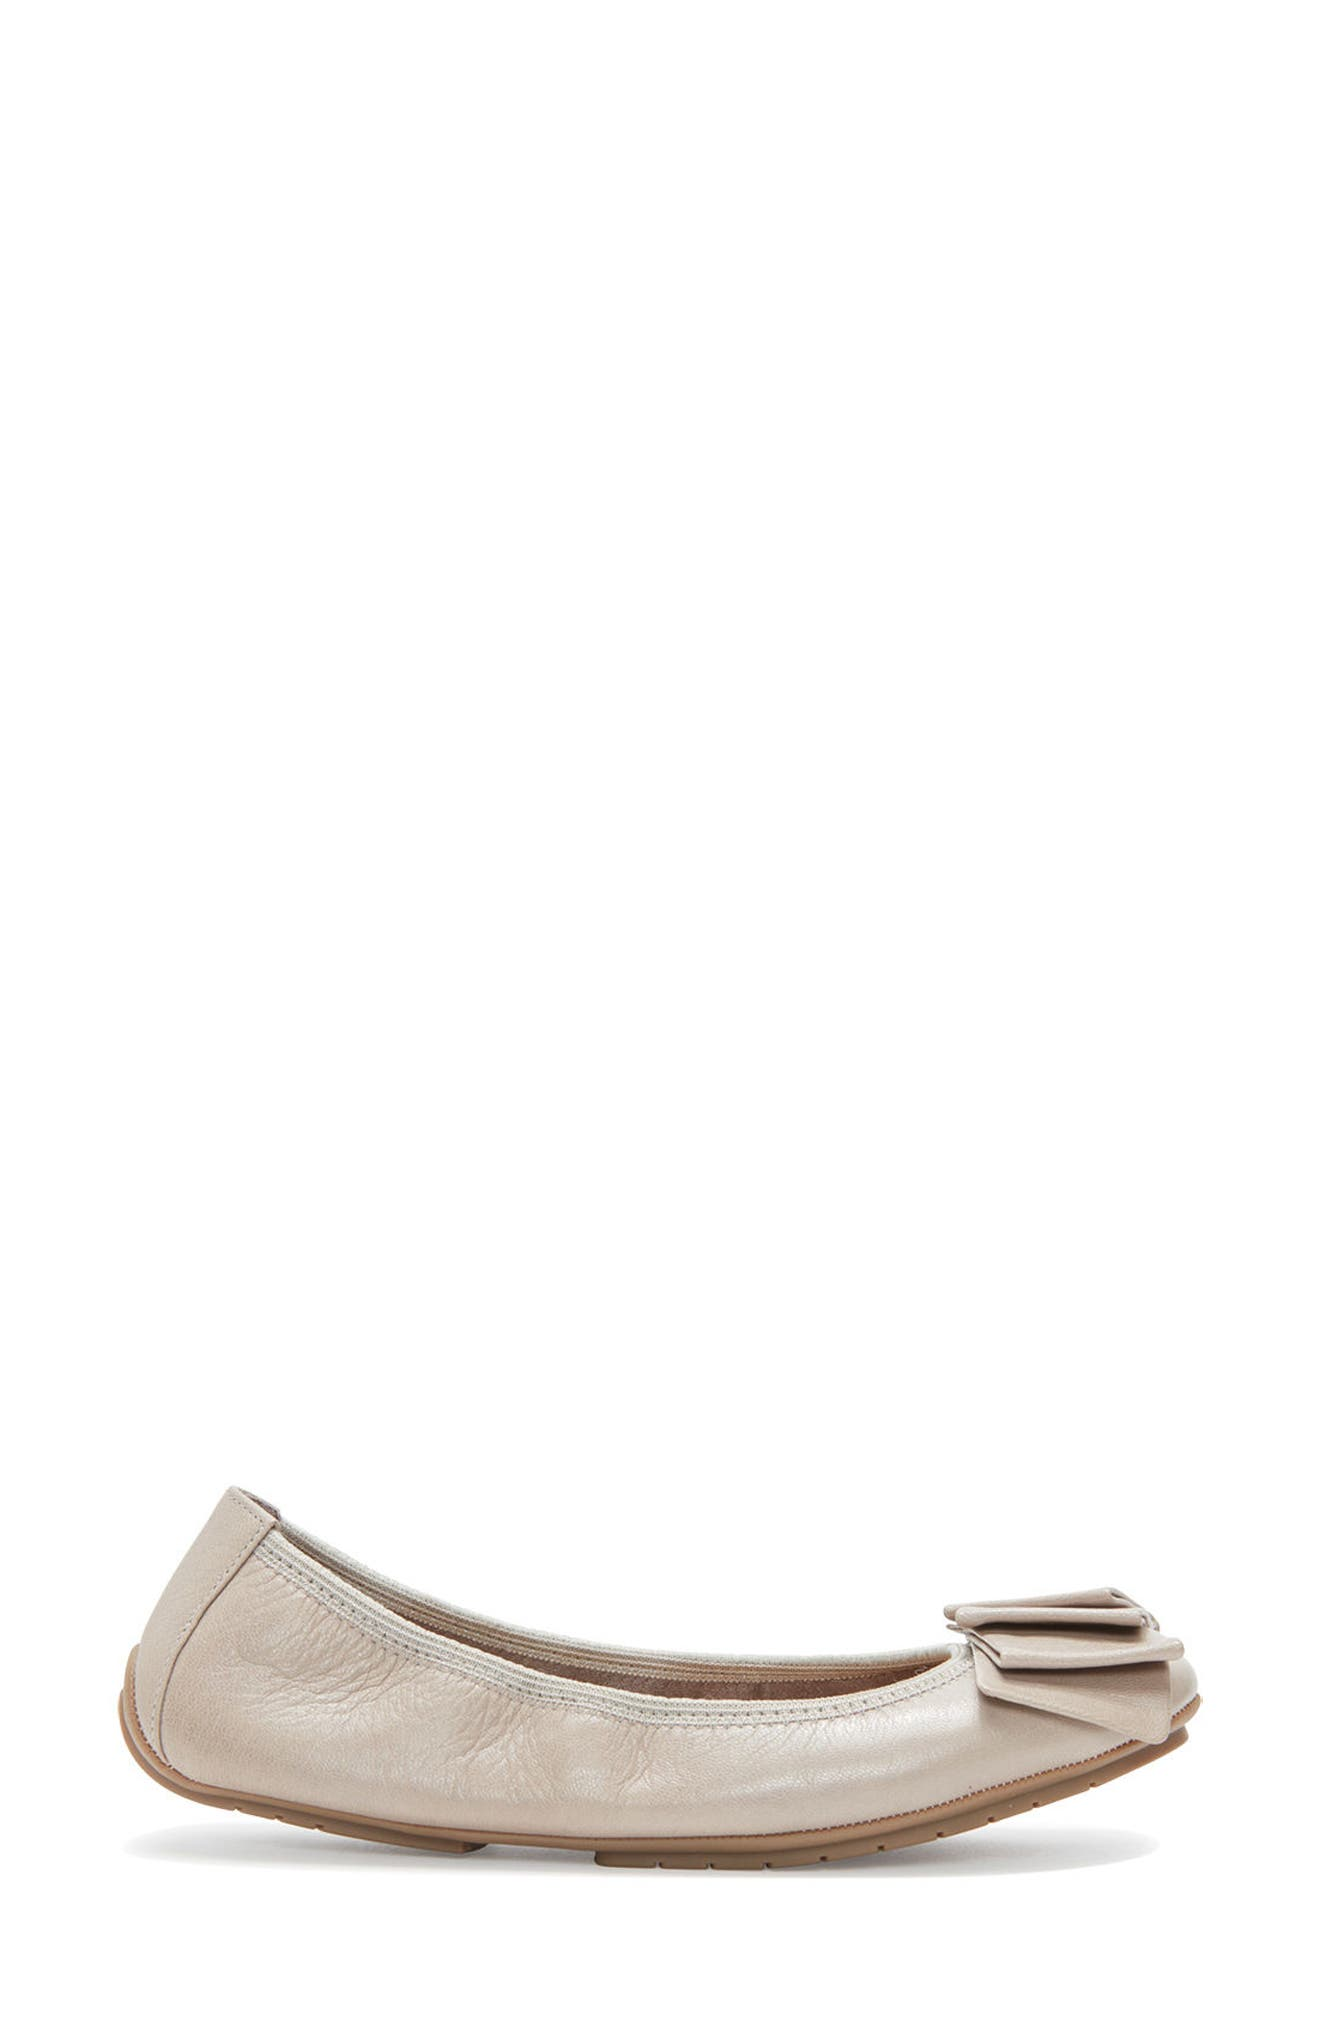 'Lilyana 2.0' Flat,                             Alternate thumbnail 3, color,                             LIGHT GREY LEATHER